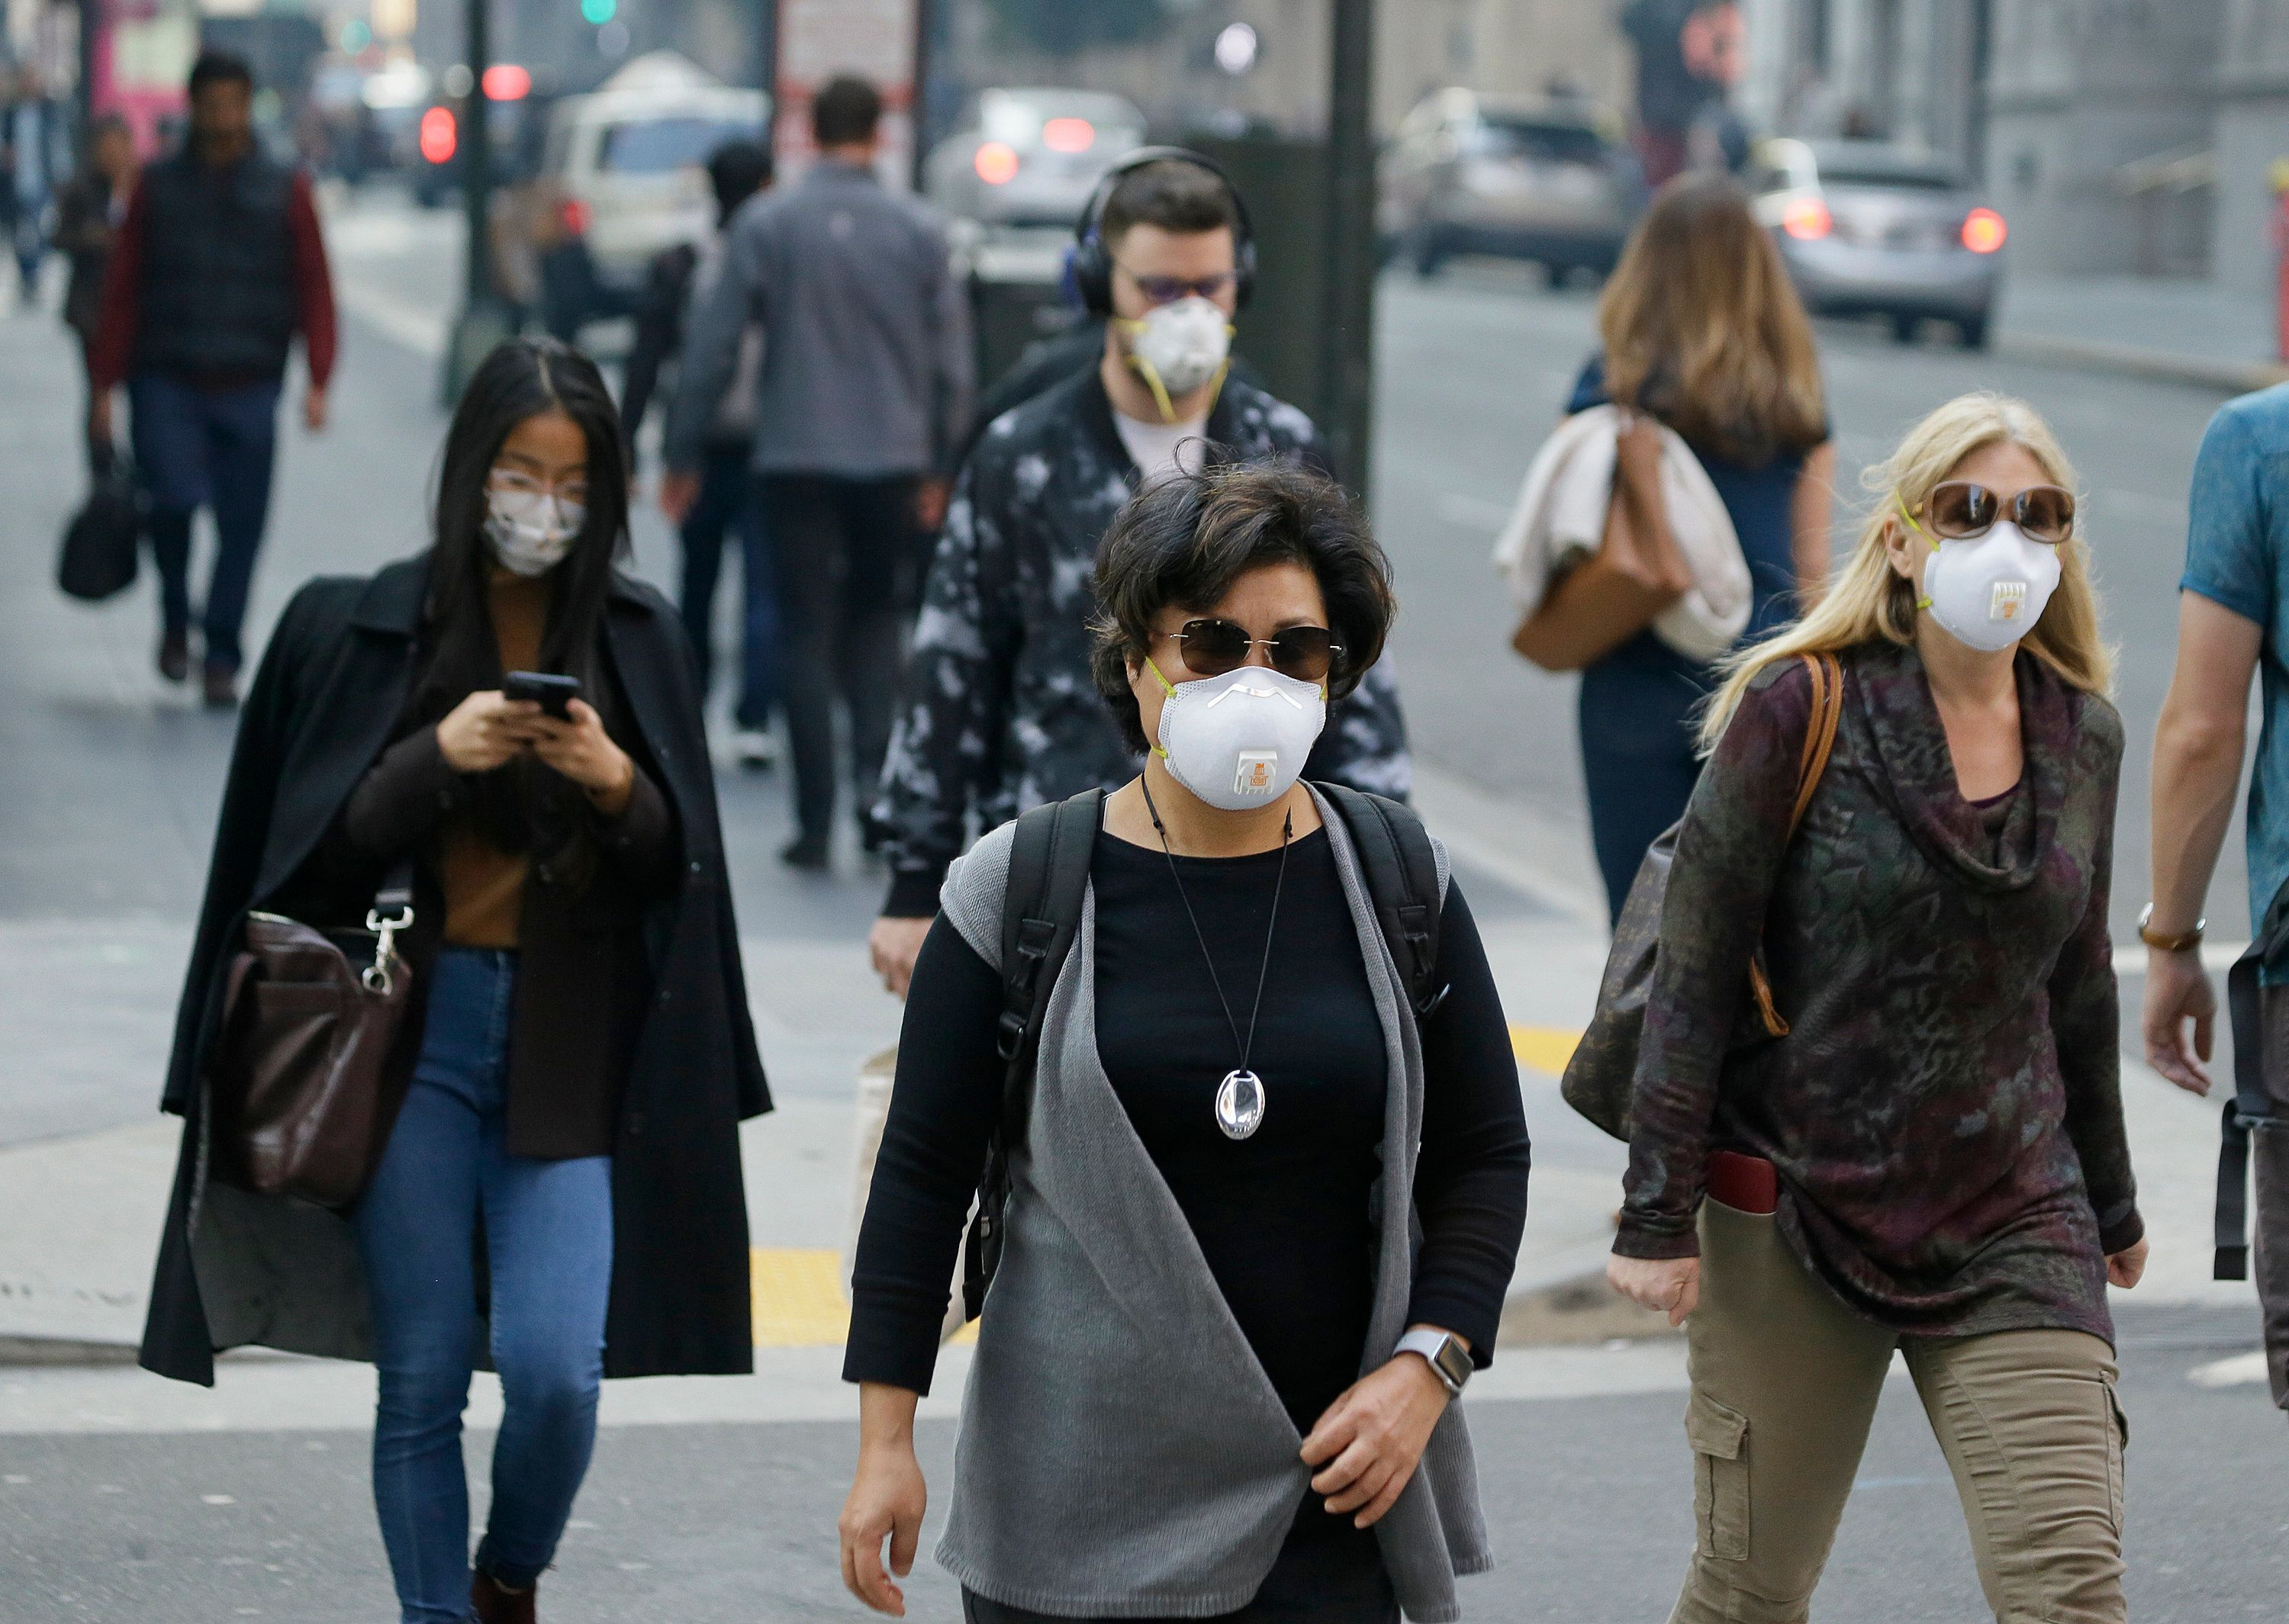 Pedestrians in San Francisco's Financial District wear protective masks against the hazardous air.